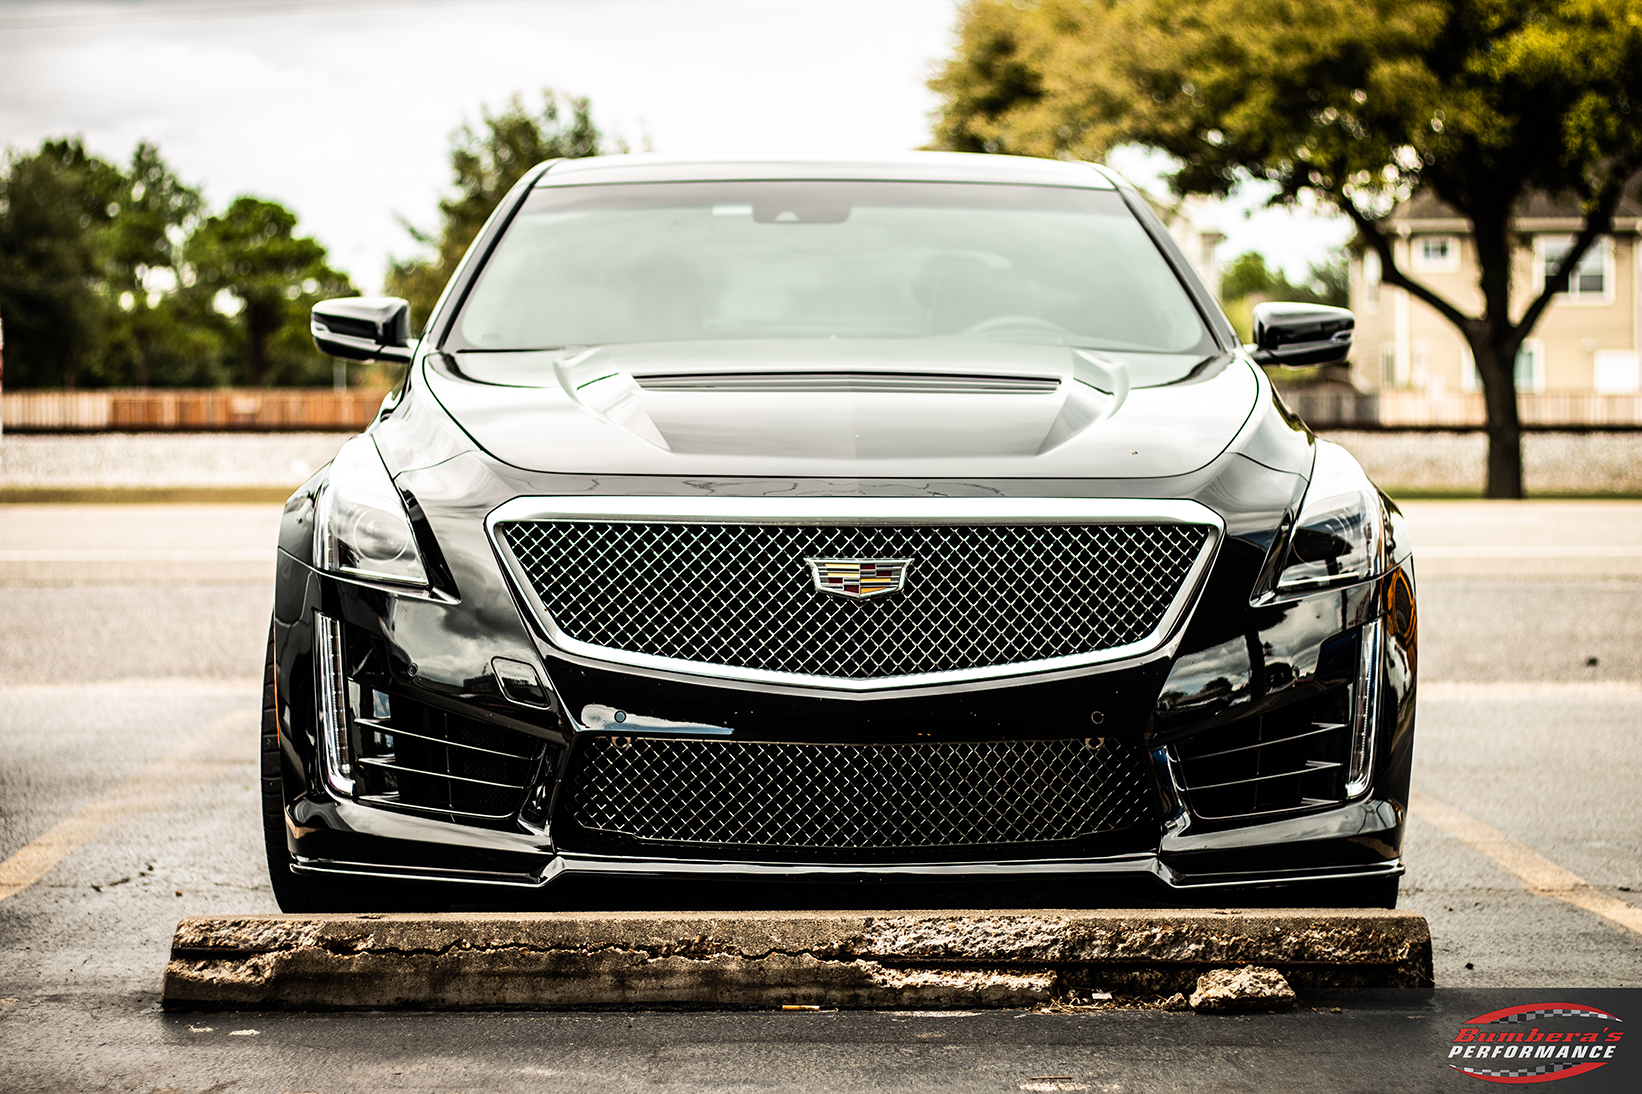 Modified Stage 2 on a 2018 CTS V